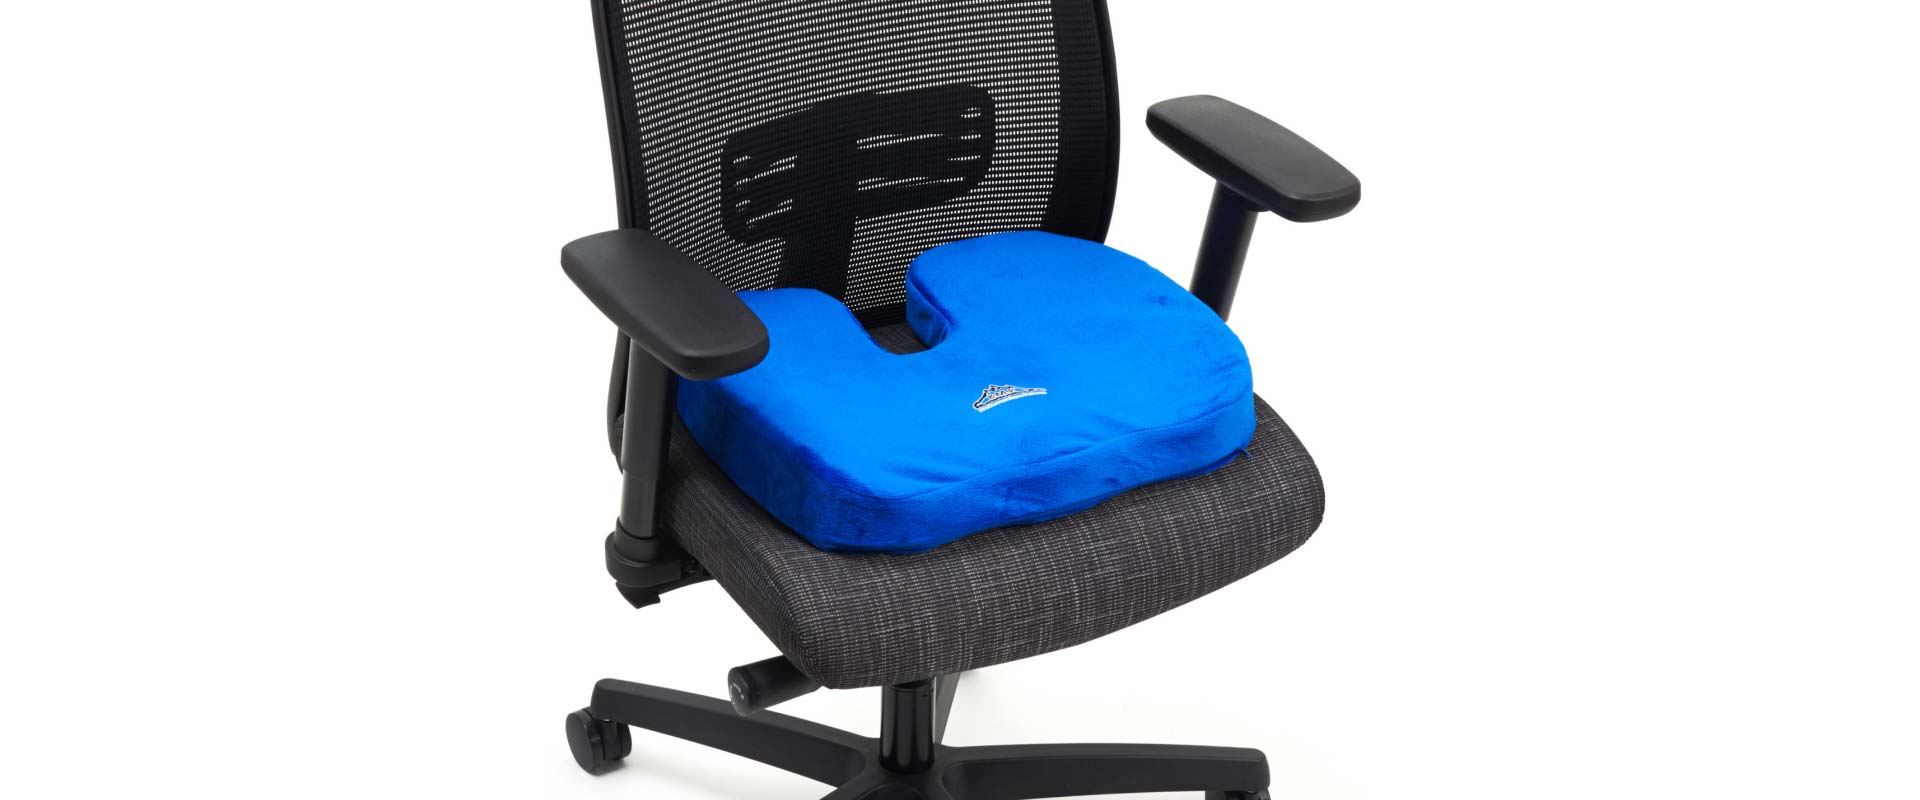 back awesome office cushion sourceshoplouisvuittonstyle seat support for com cushions chairs chair rememberingfallenjs from of heated